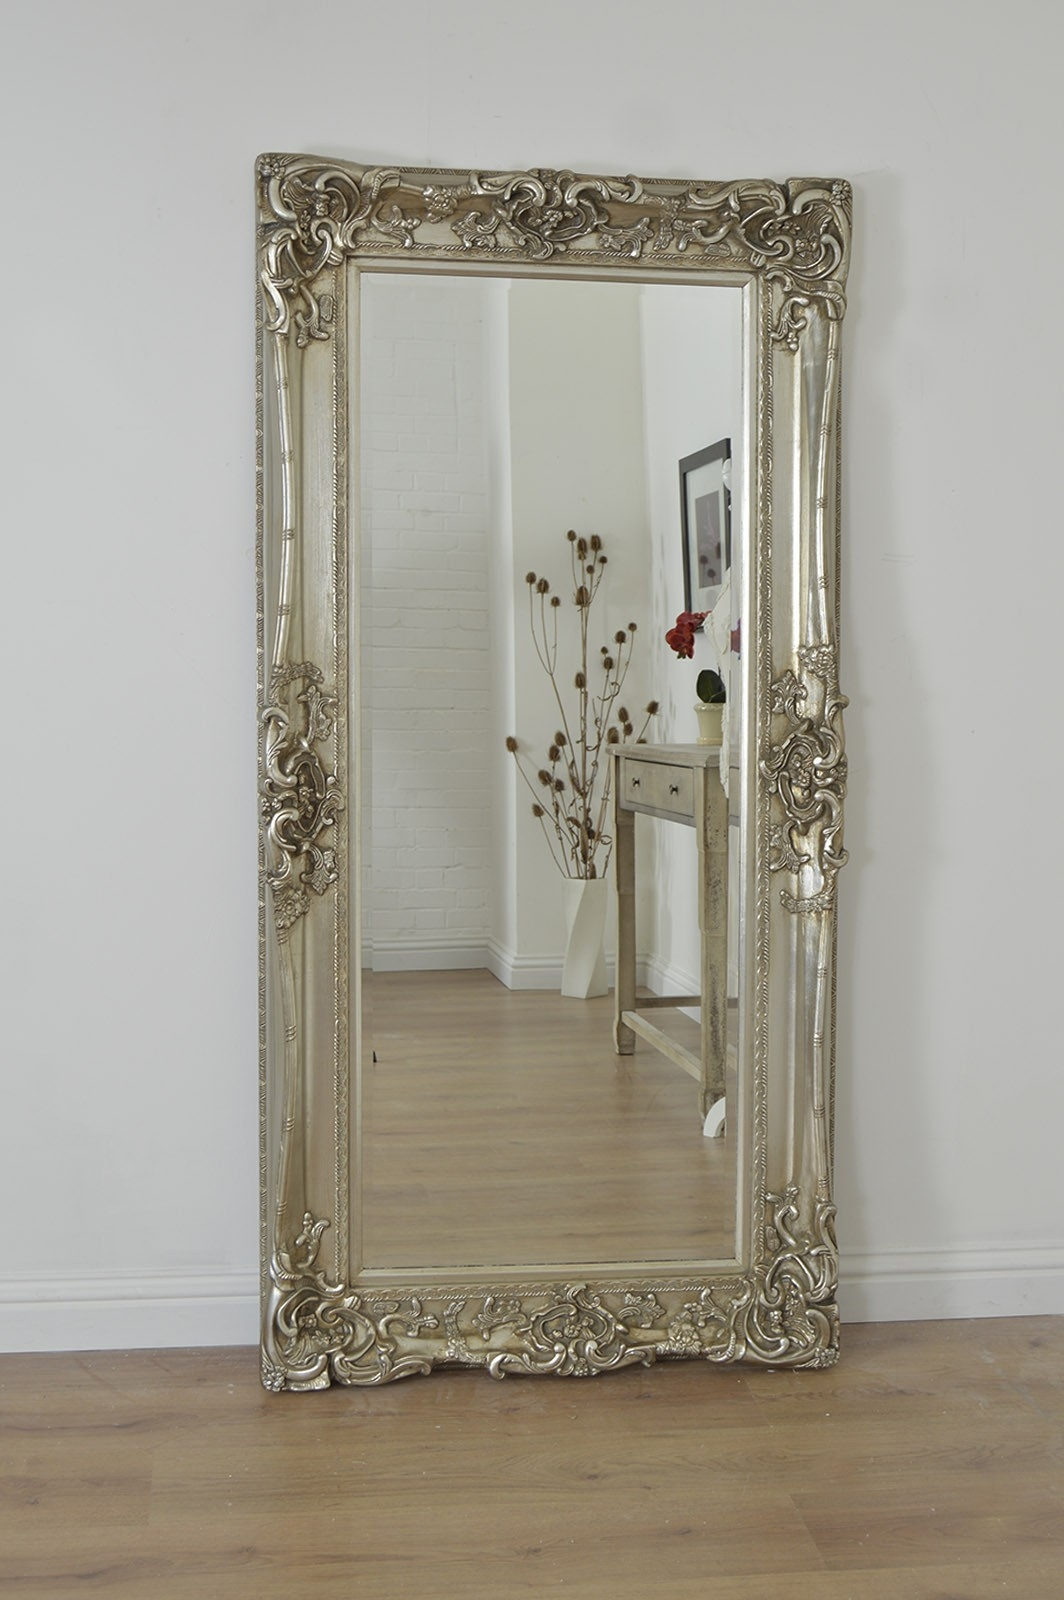 Large Silver Shab Chic Design Ornate Wall Mirror New 6ft X 3ft With Shabby Chic Large Wall Mirrors (View 6 of 15)